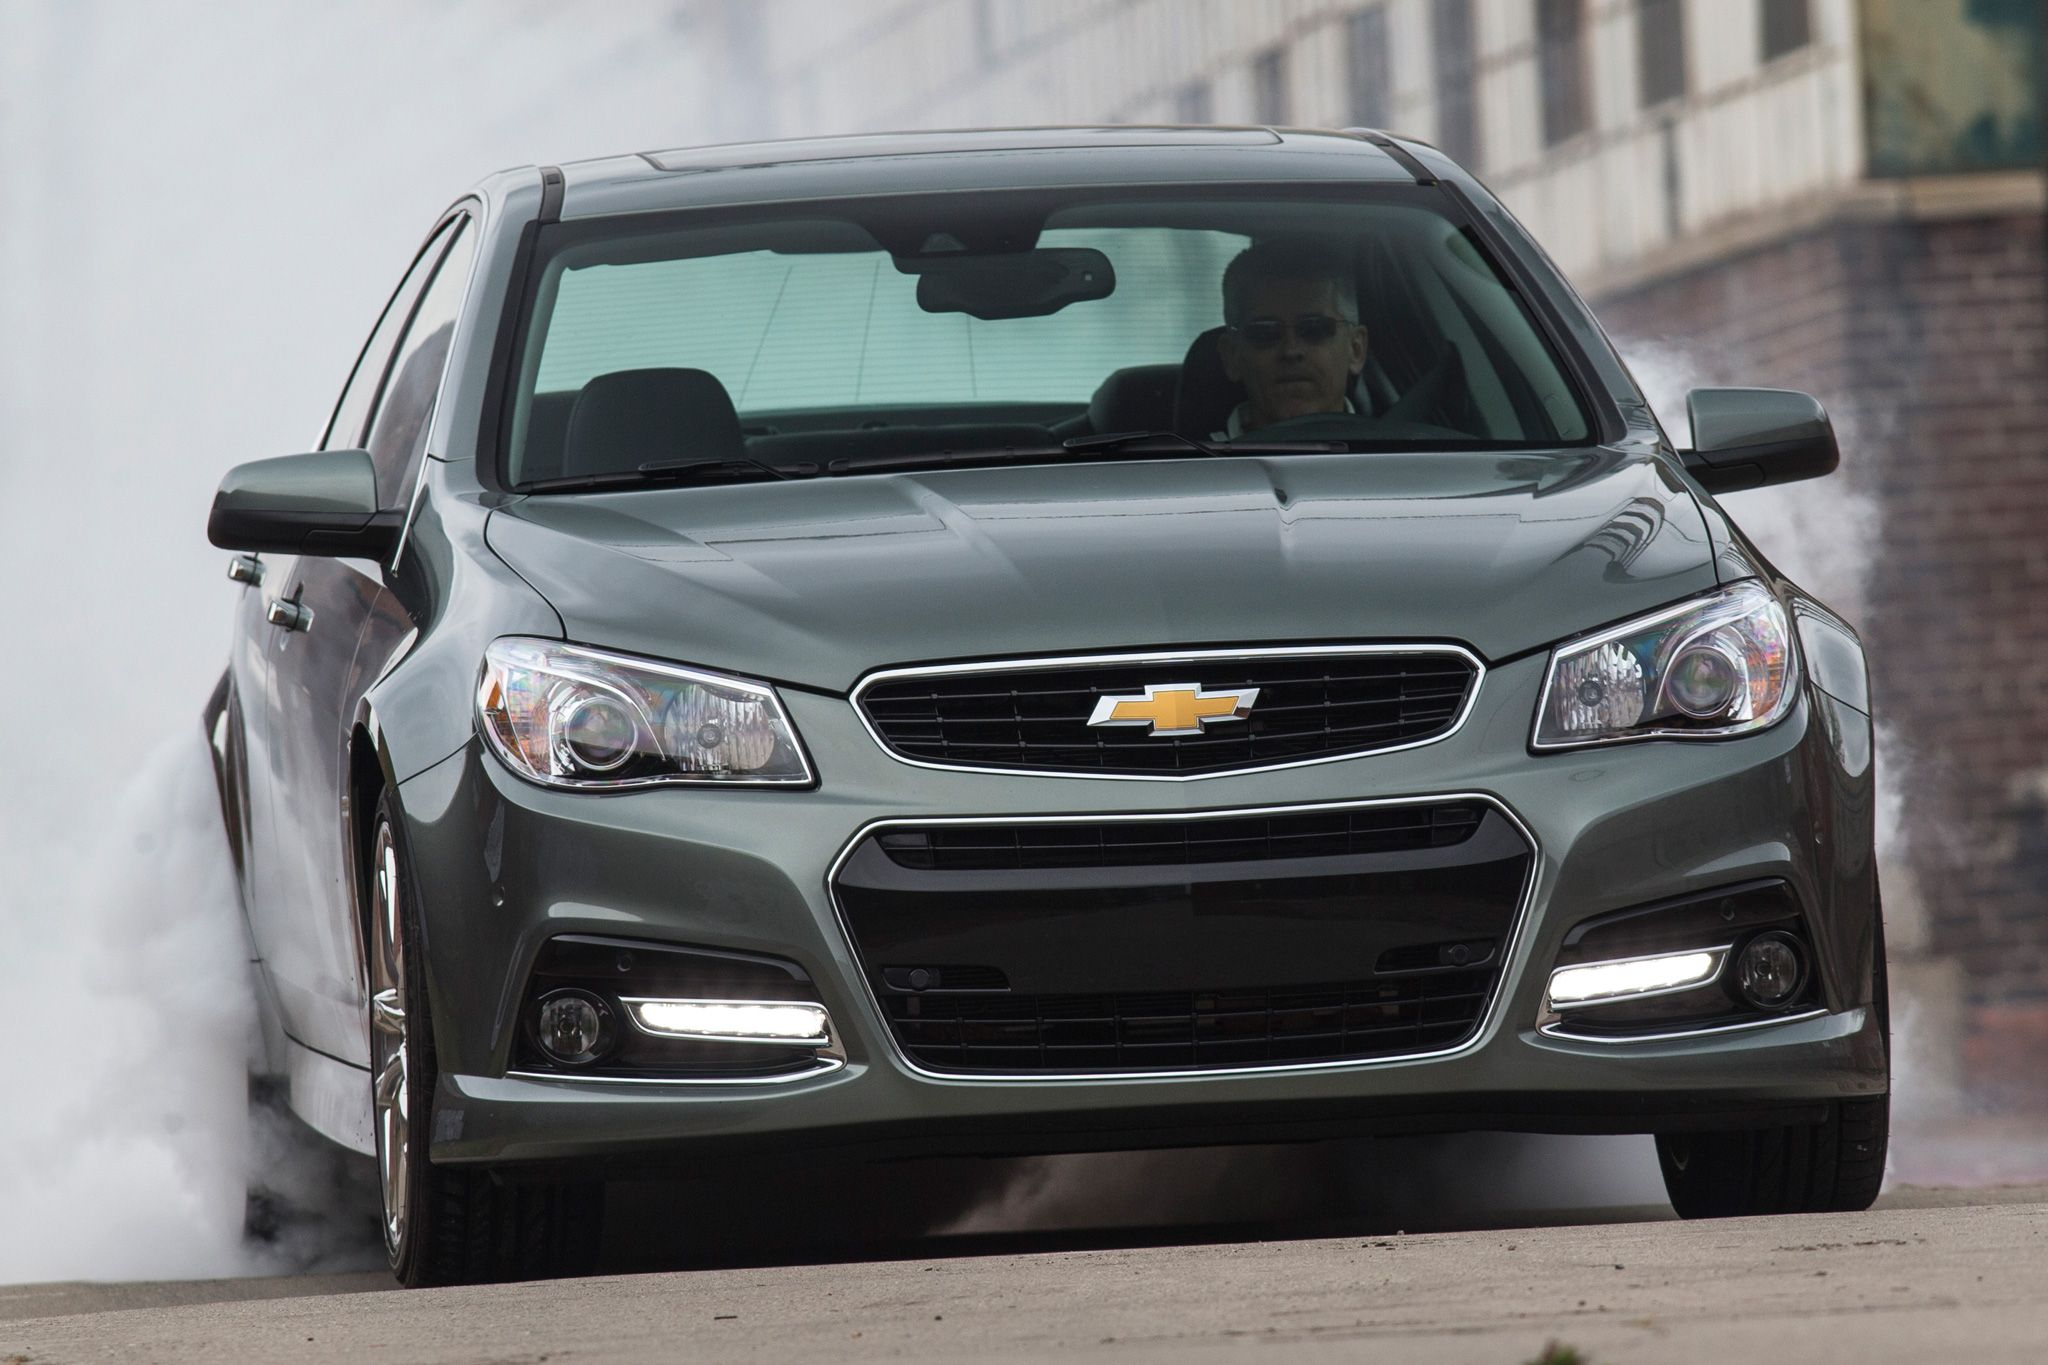 2014 chevrolet ss first drive motor trend coming soon to dave smith motors